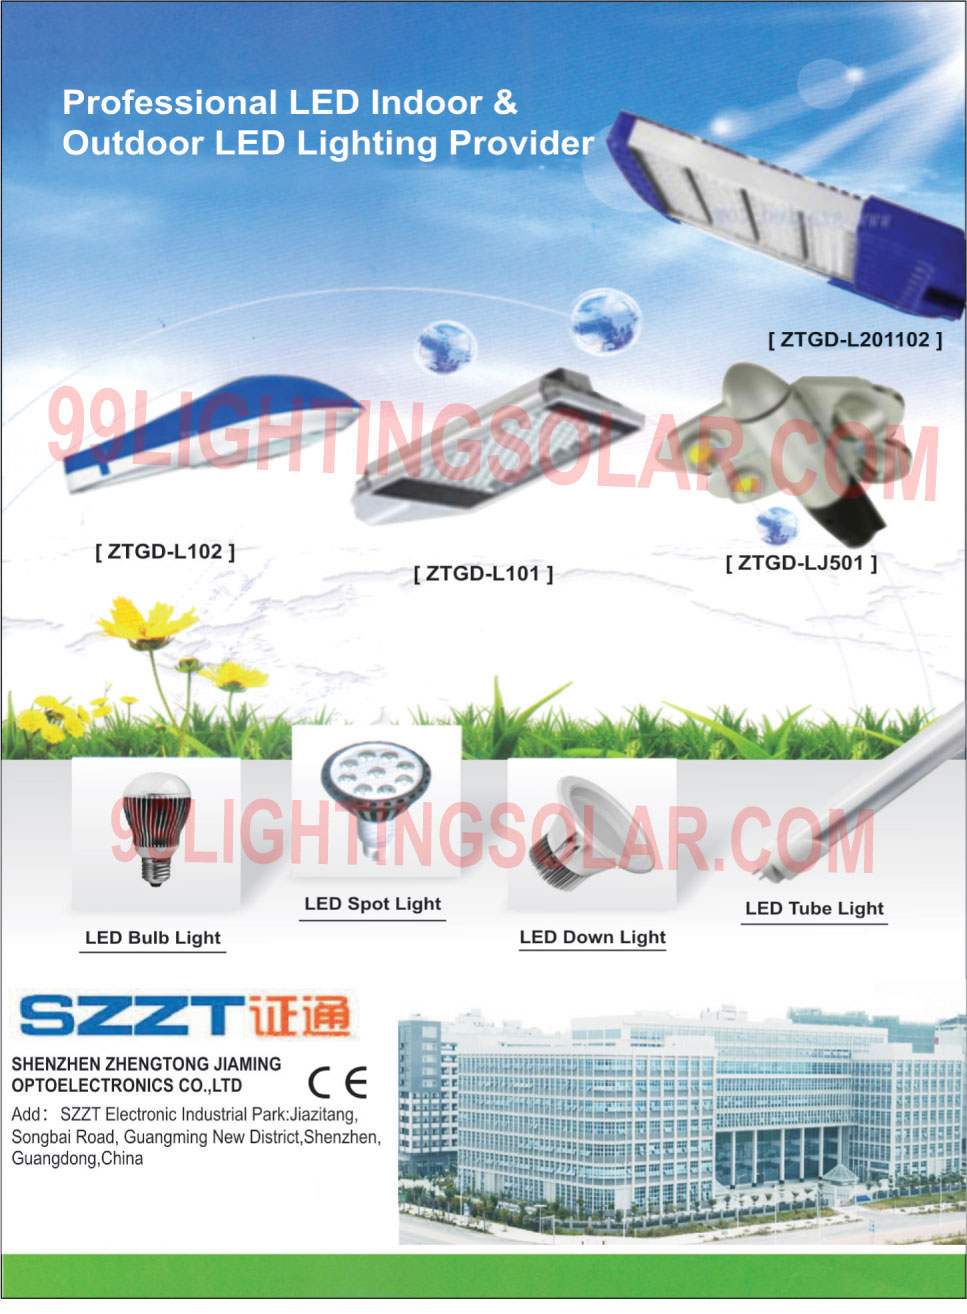 Led lights, Led Indoor Lights, Led Outdoor Lights, Led Bulb Lights, Led Spot Lights, Led Down Lights, Led Tube Lights